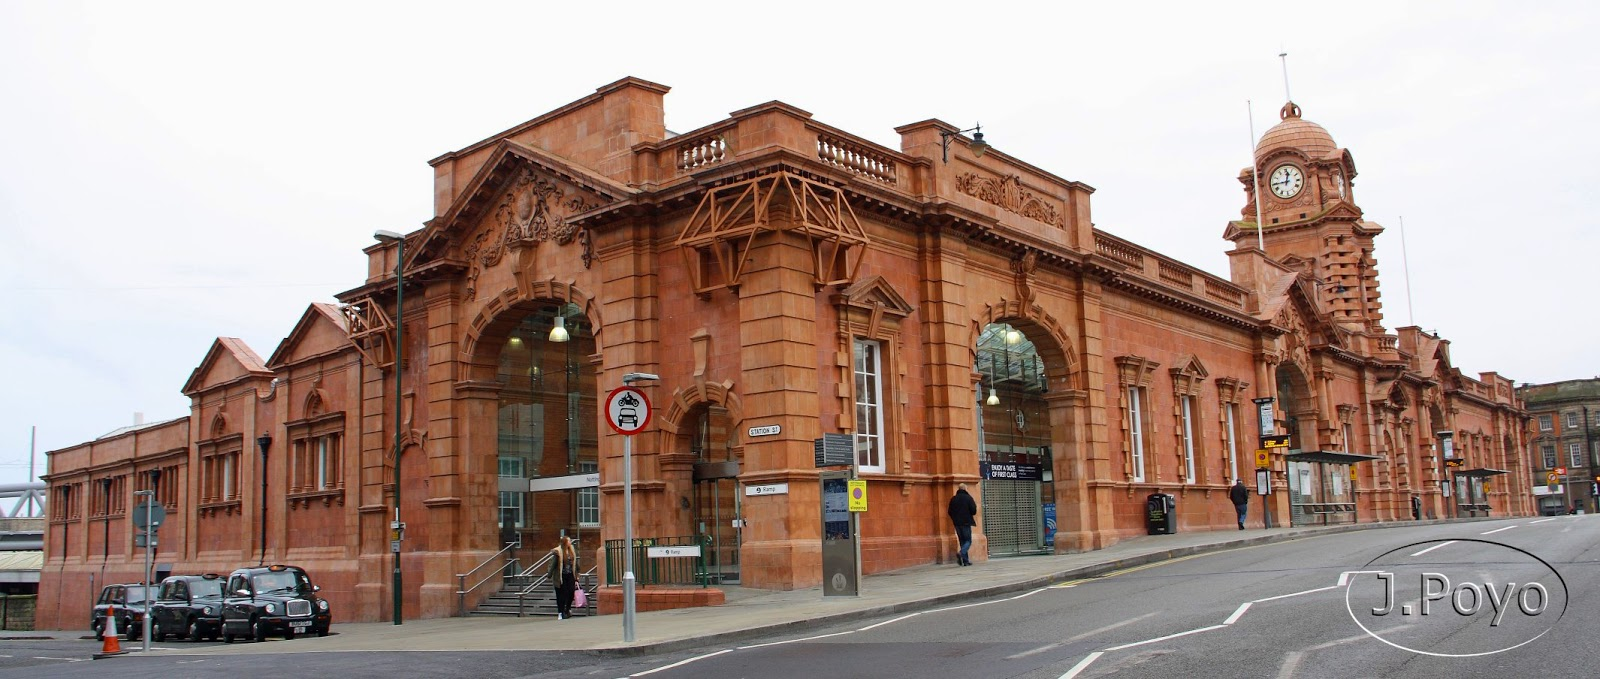 Midland Station de Nottingham